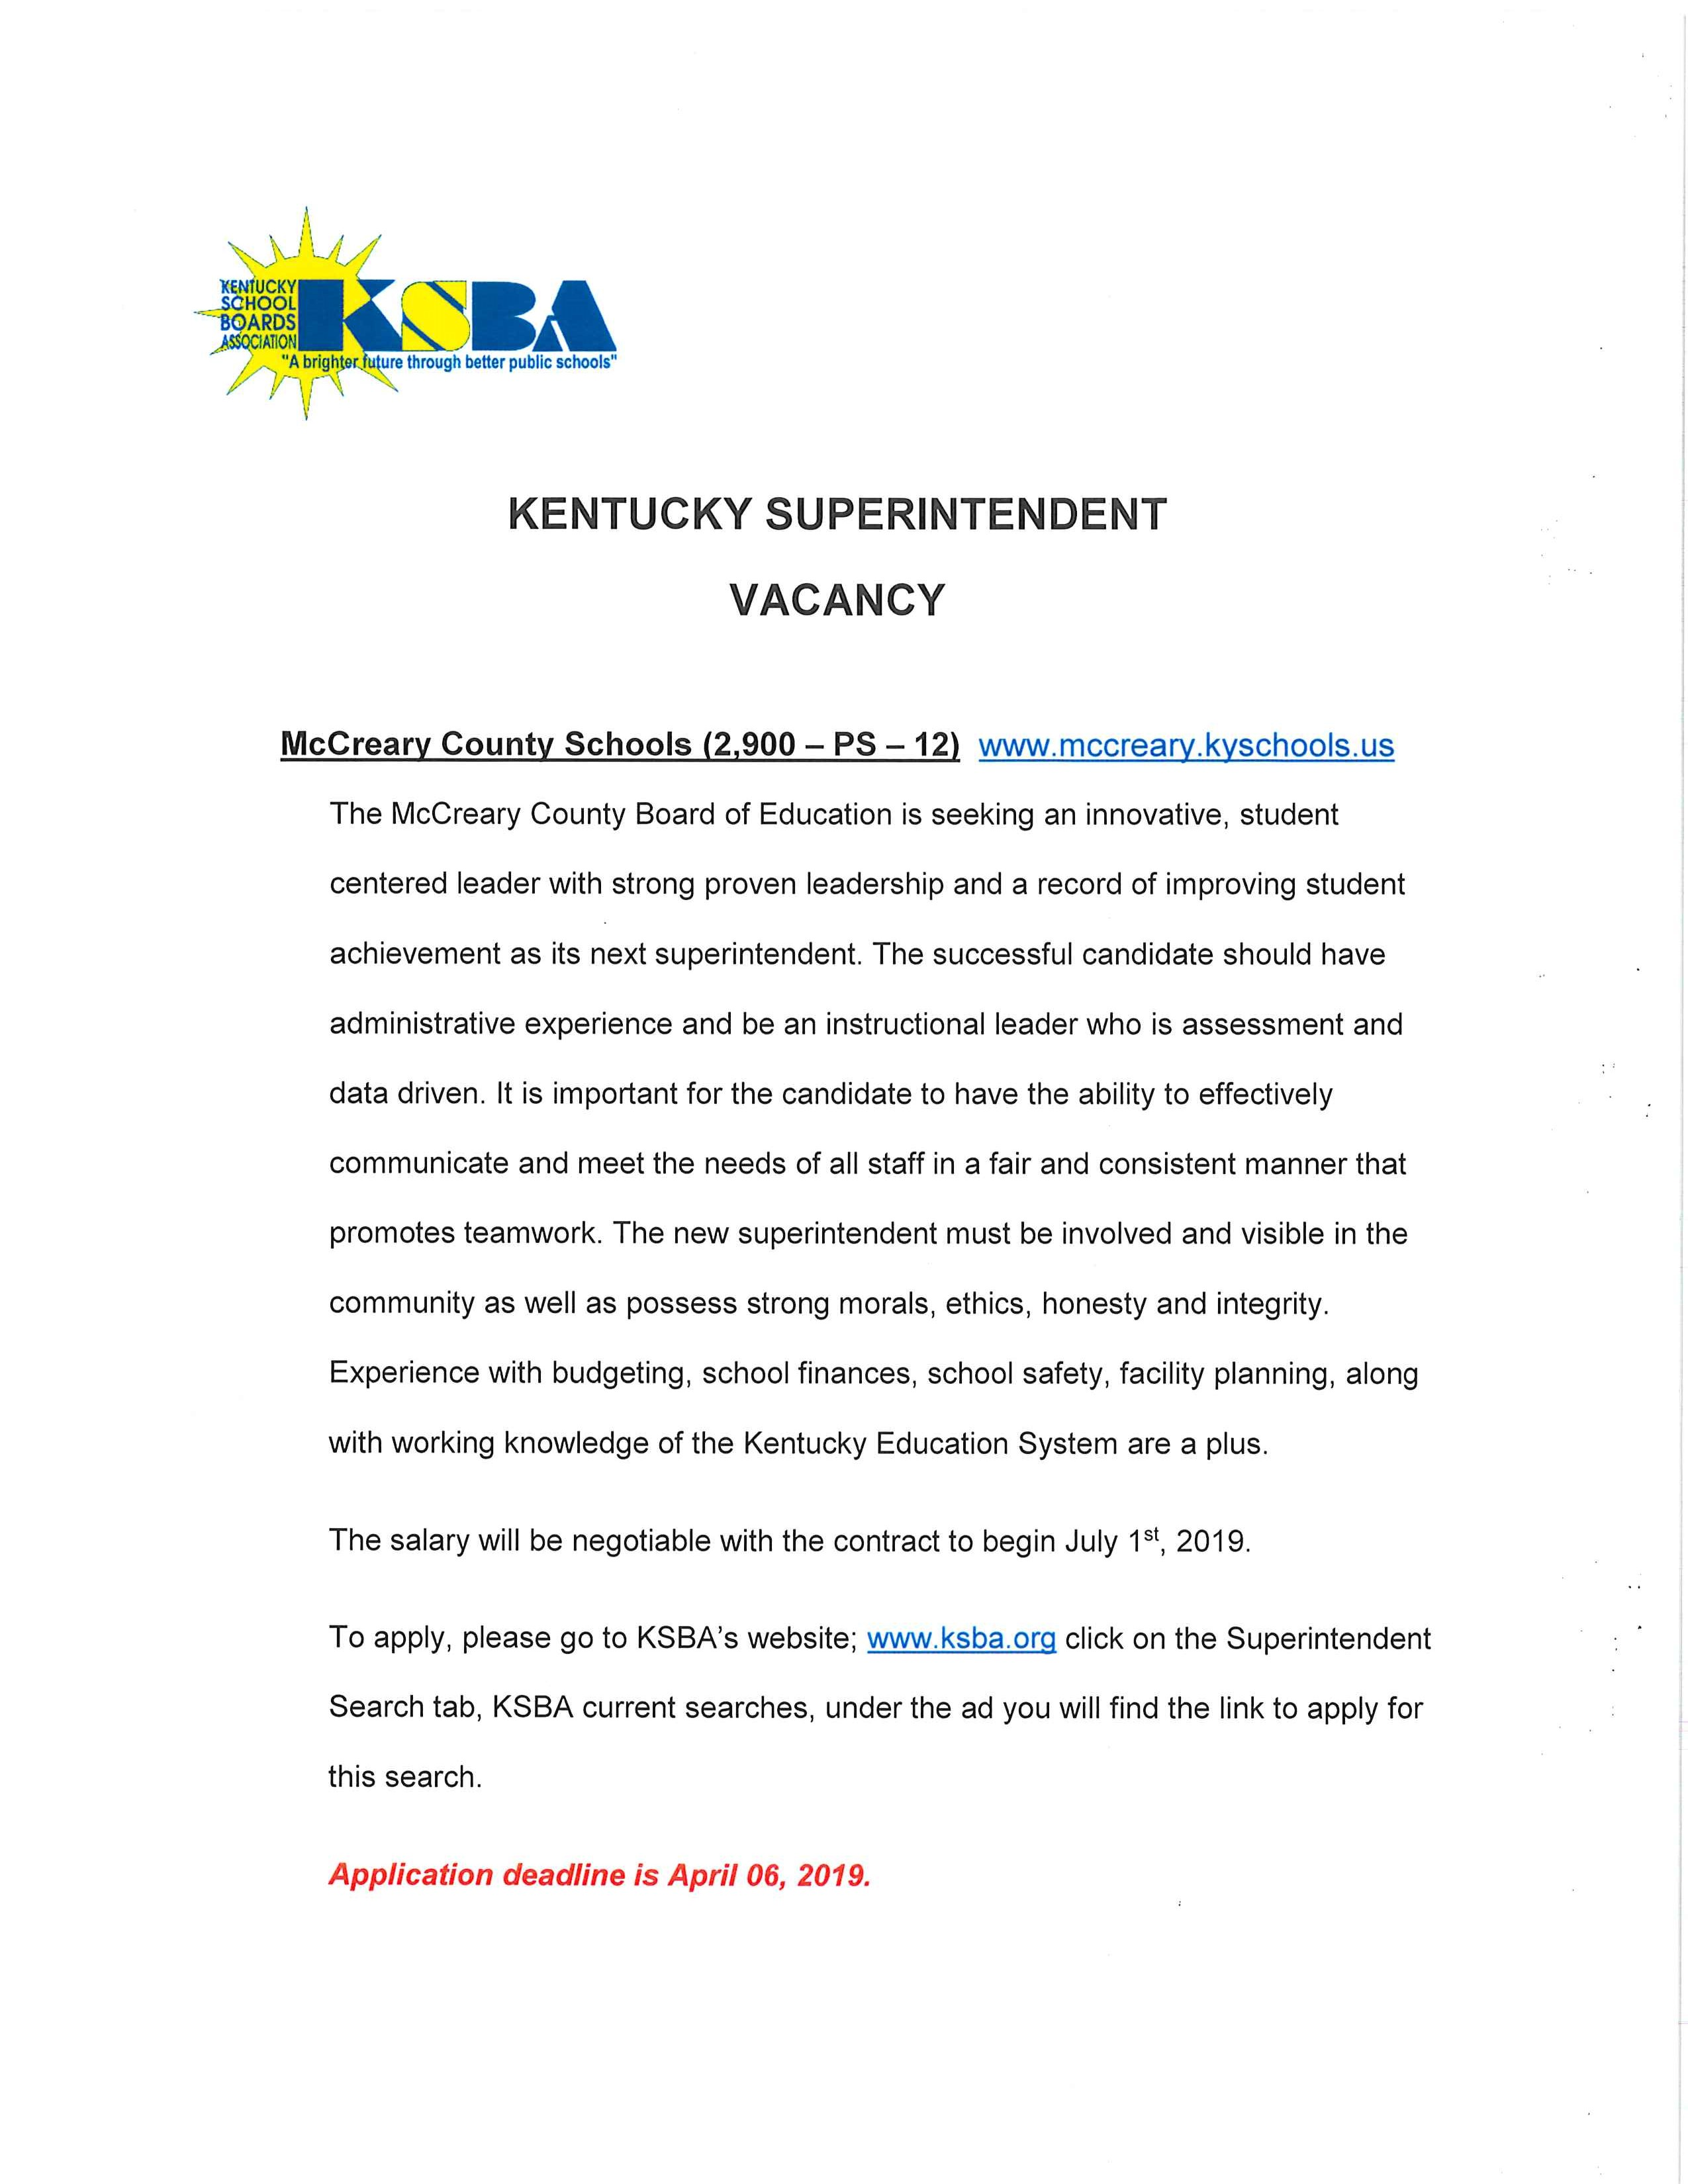 Kentucky Superintendent Vacancy